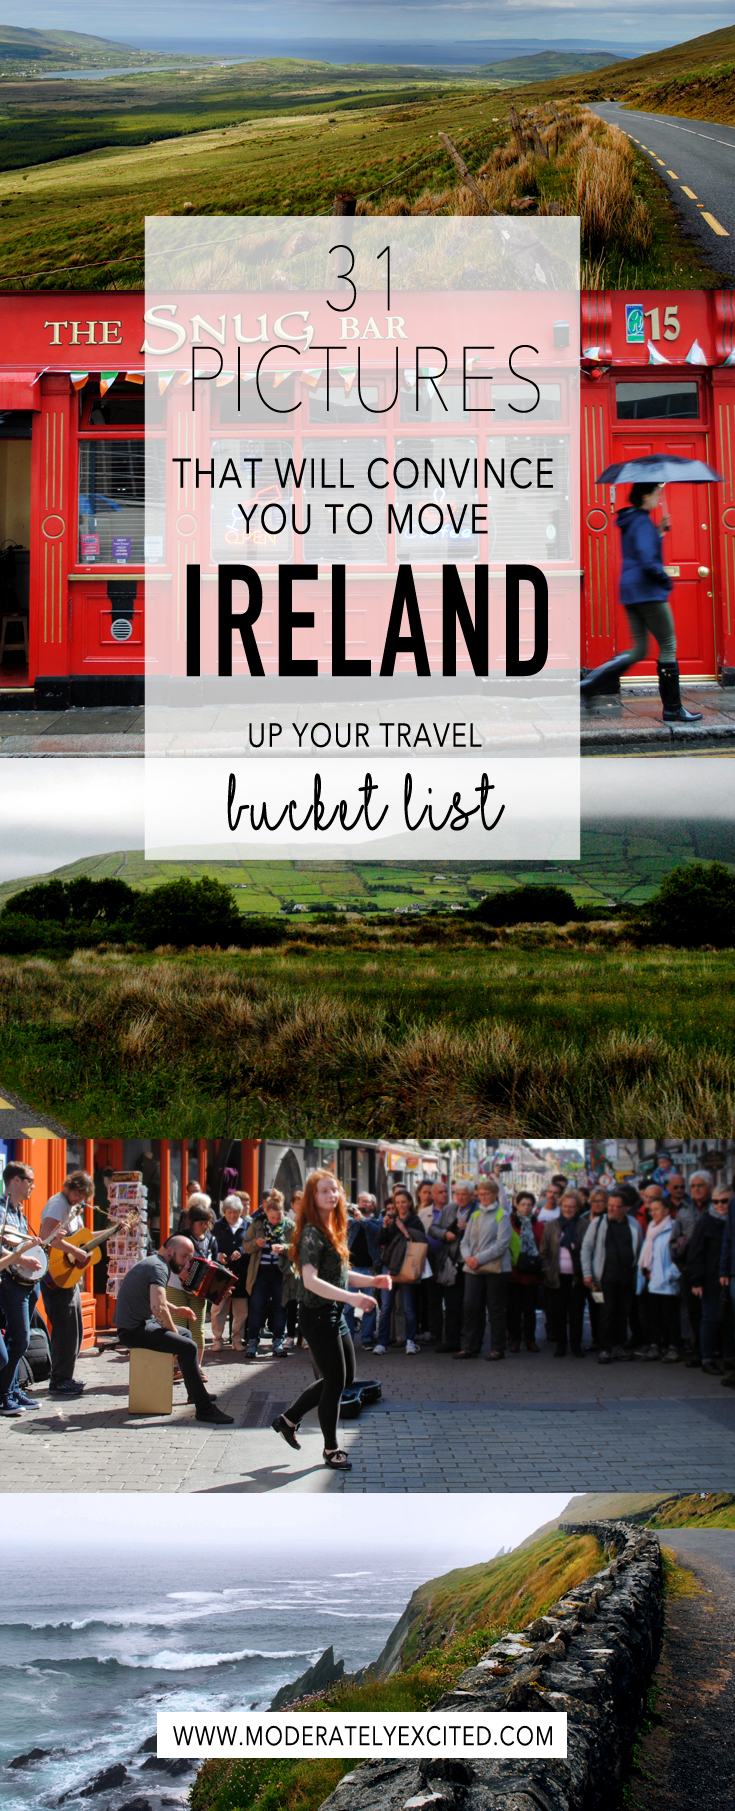 31 pictures that will convince you to move Ireland up your travel bucket list.